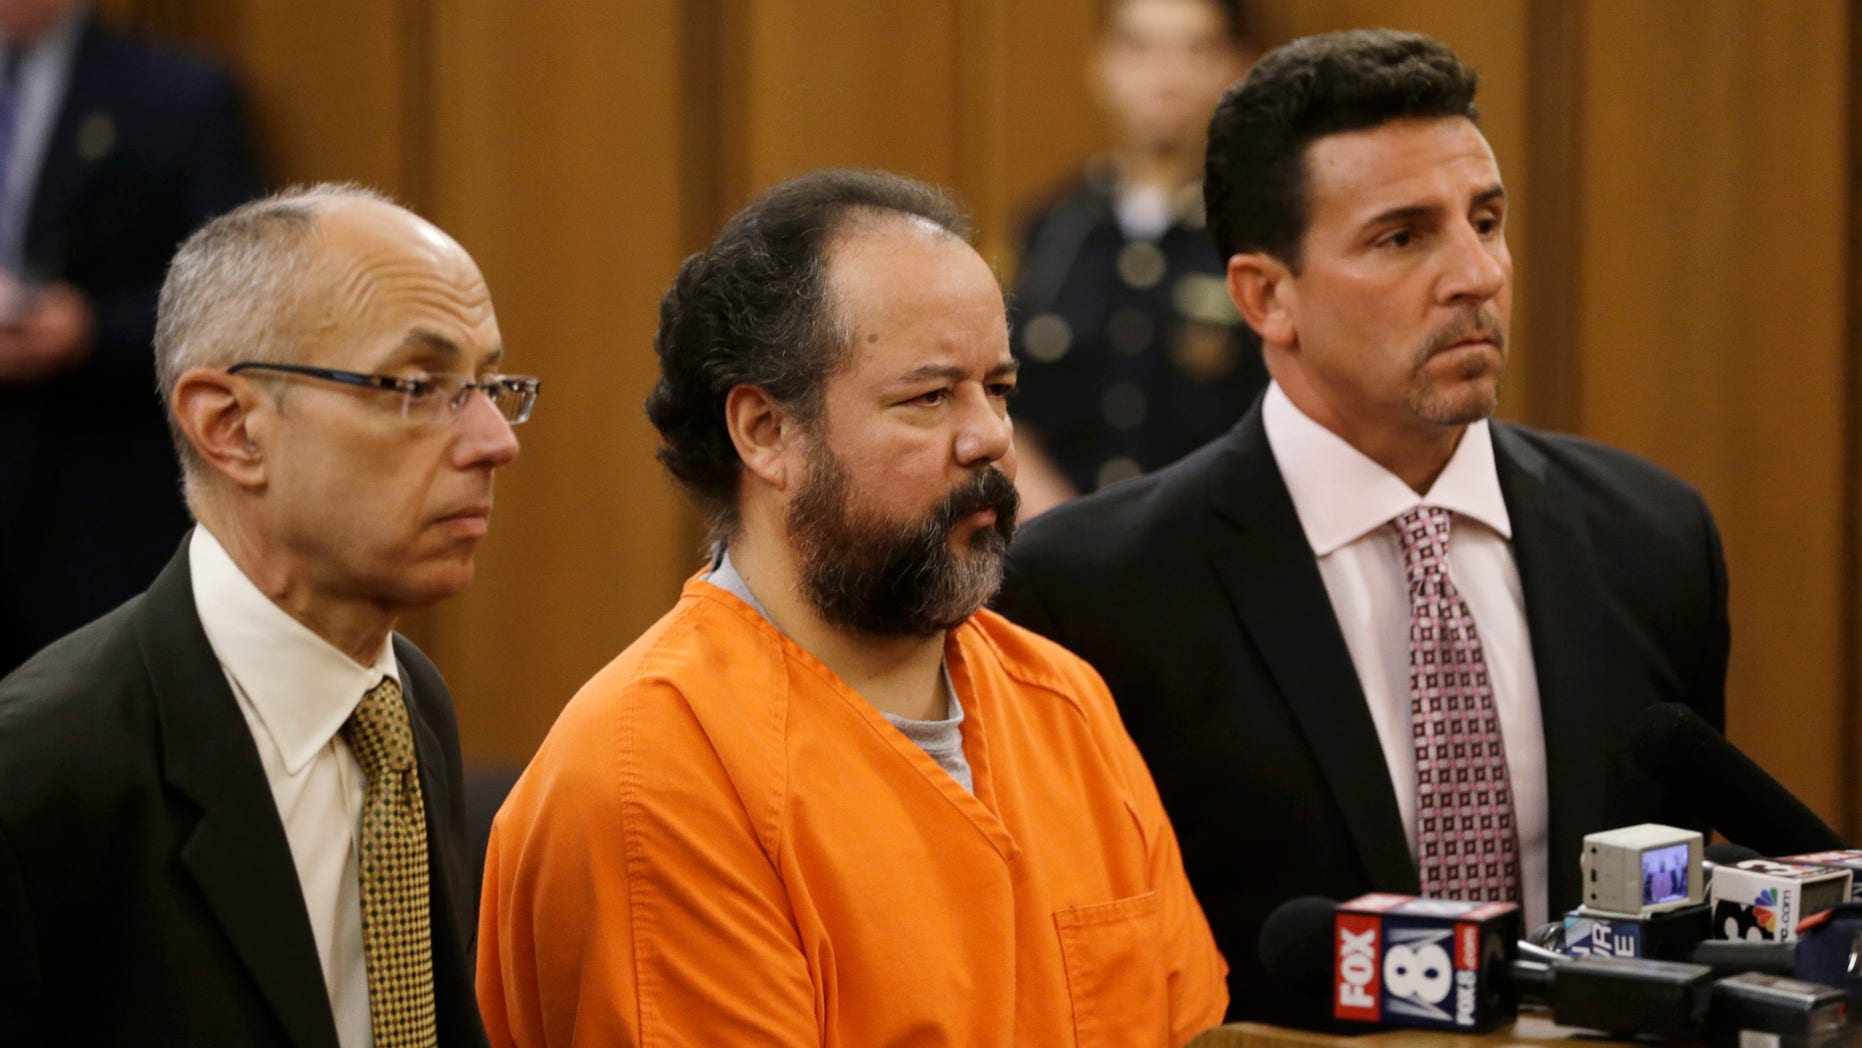 Ariel Castro with his defense attorneys during his arraignment Wednesday, July 17, 2013, in Cleveland.